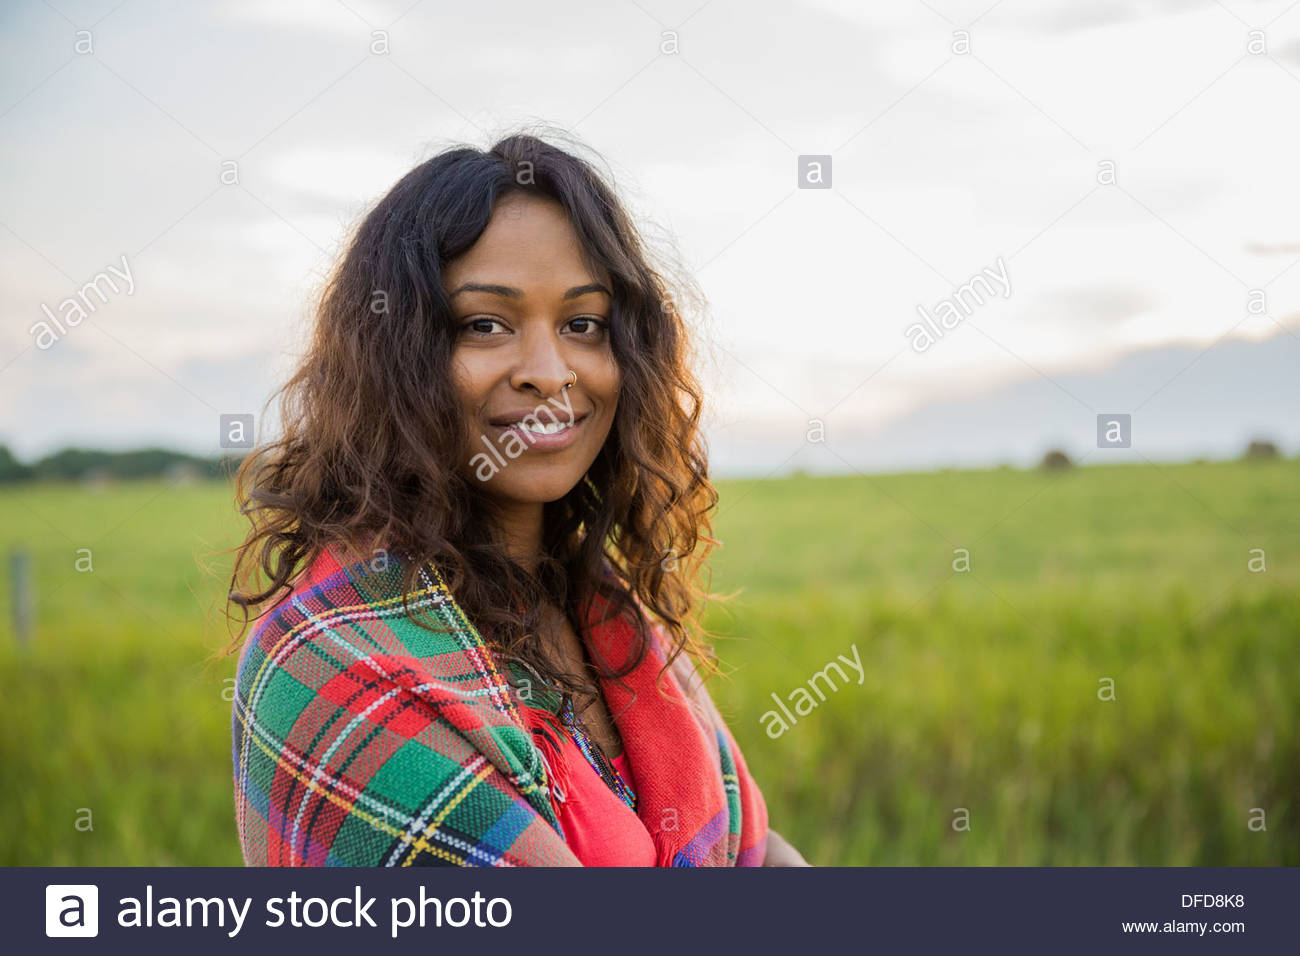 Portrait of smiling woman wrapped in blanket outdoors - Stock Image